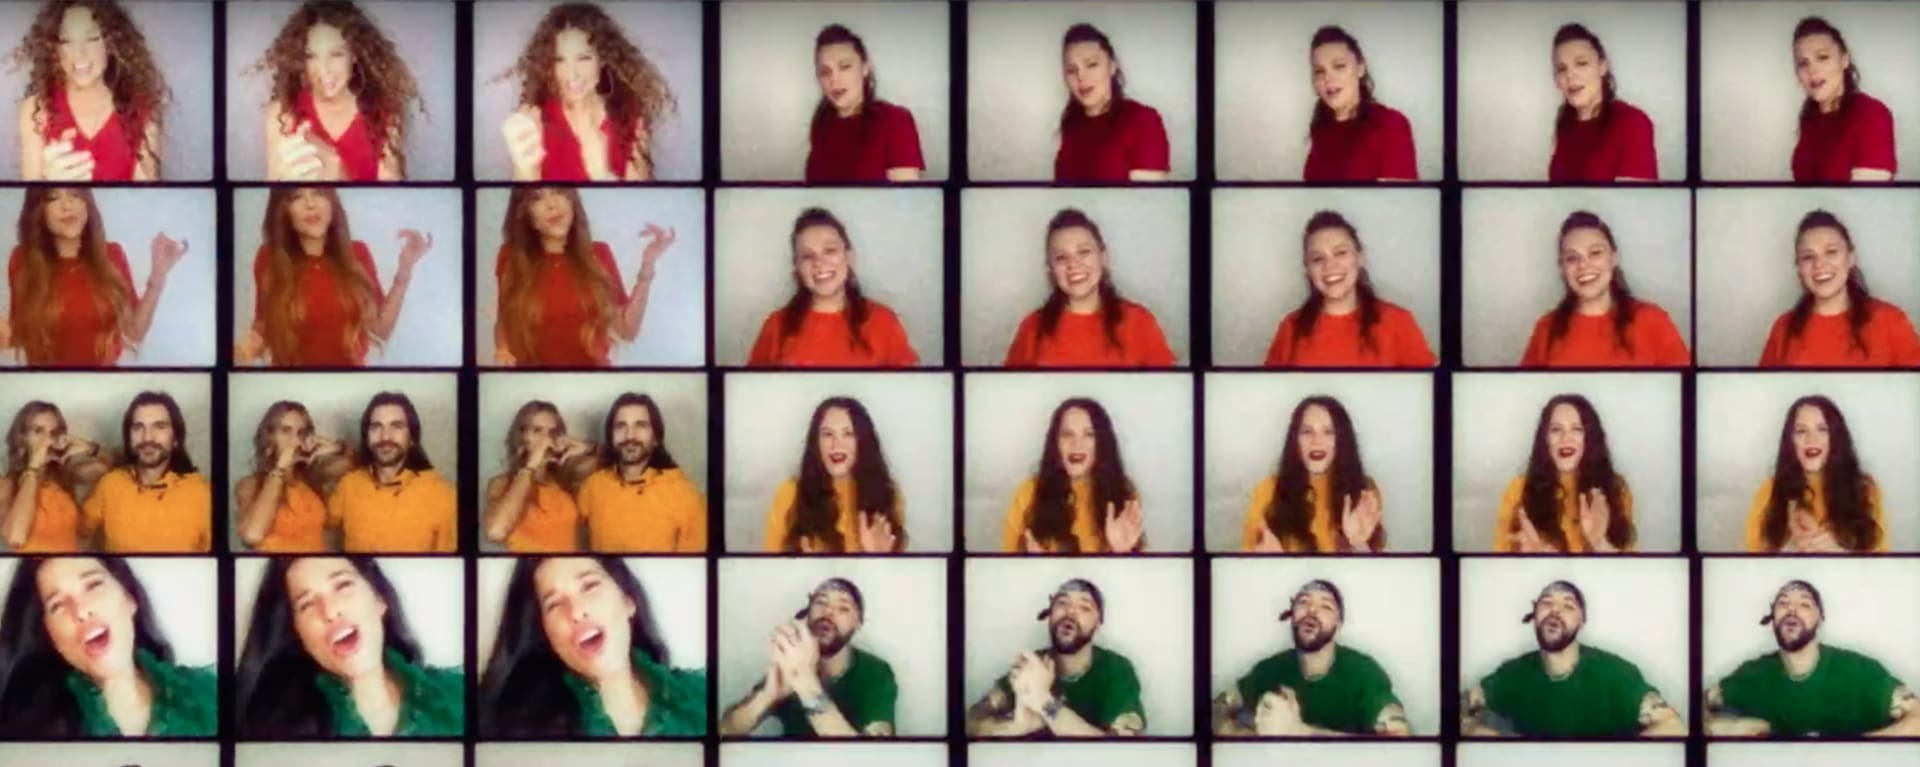 Jesse & Joy estrenan el video de Love